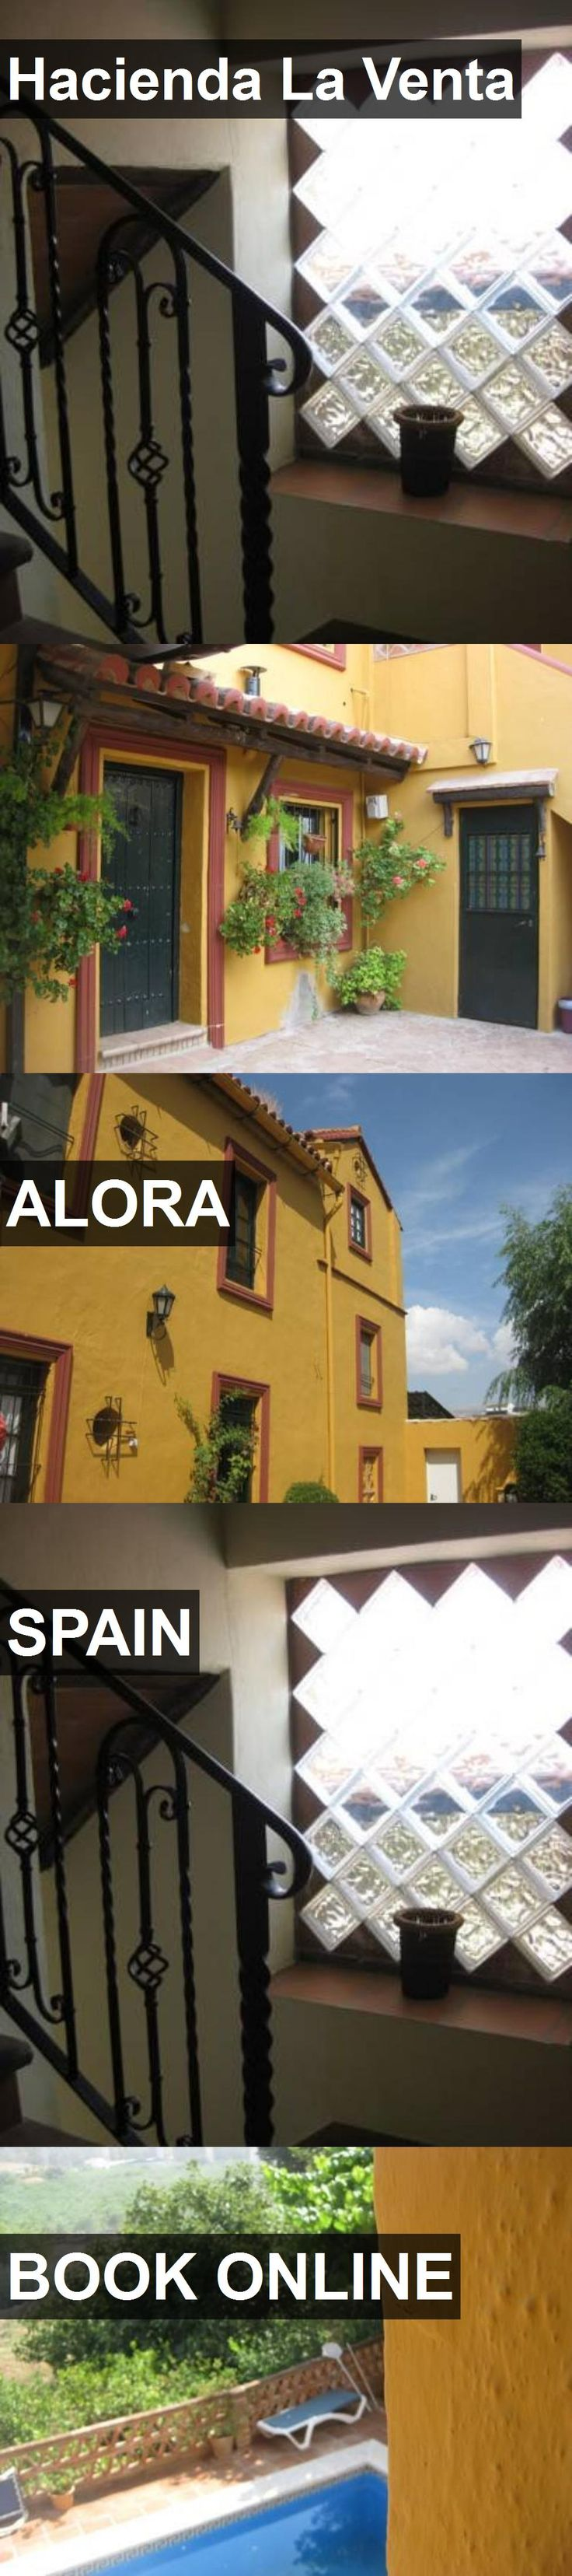 Hotel Hacienda La Venta in Alora, Spain. For more information, photos, reviews and best prices please follow the link. #Spain #Alora #travel #vacation #hotel